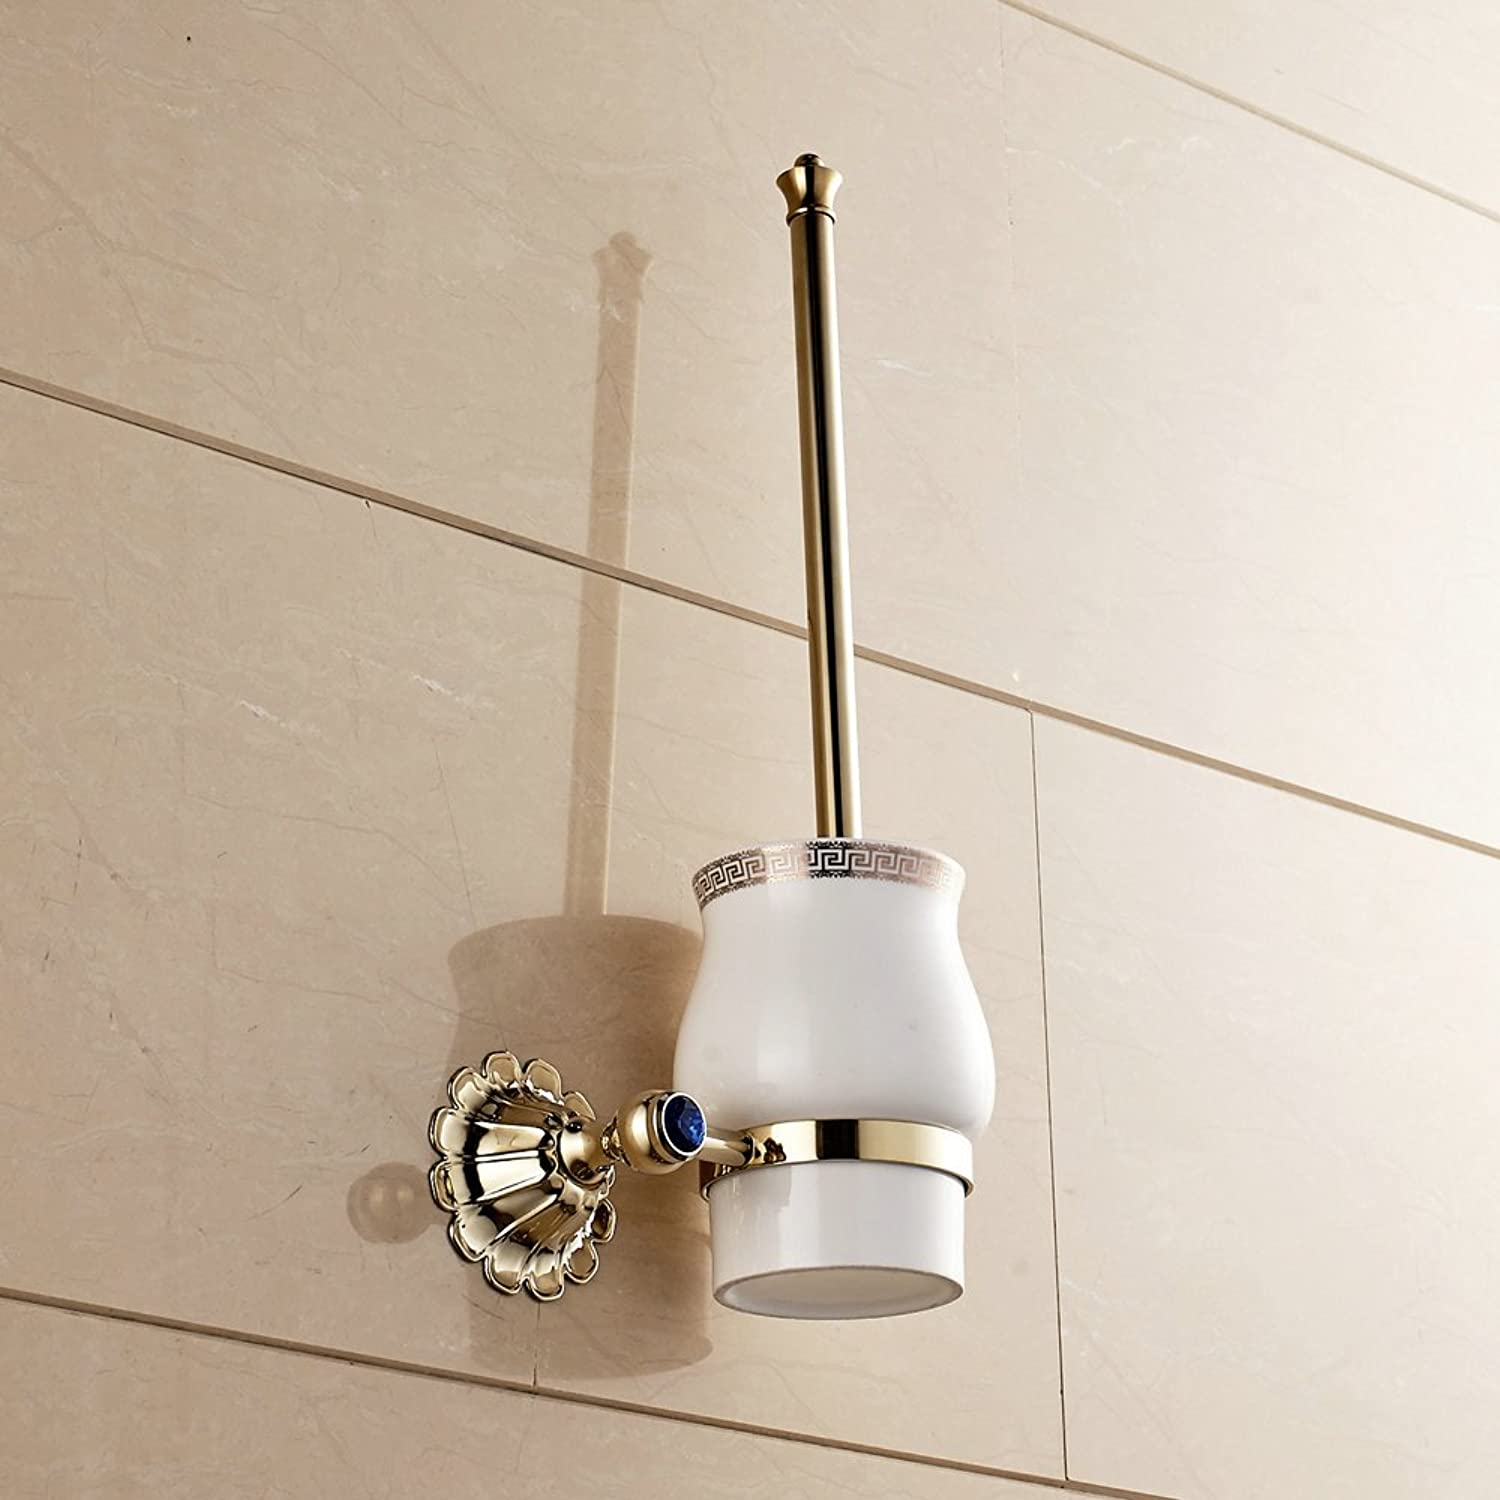 Hiendure Toilet Brush With Wall Mounted Ceramic Holder, Titanium gold Toilet Brush And Holder Polished gold